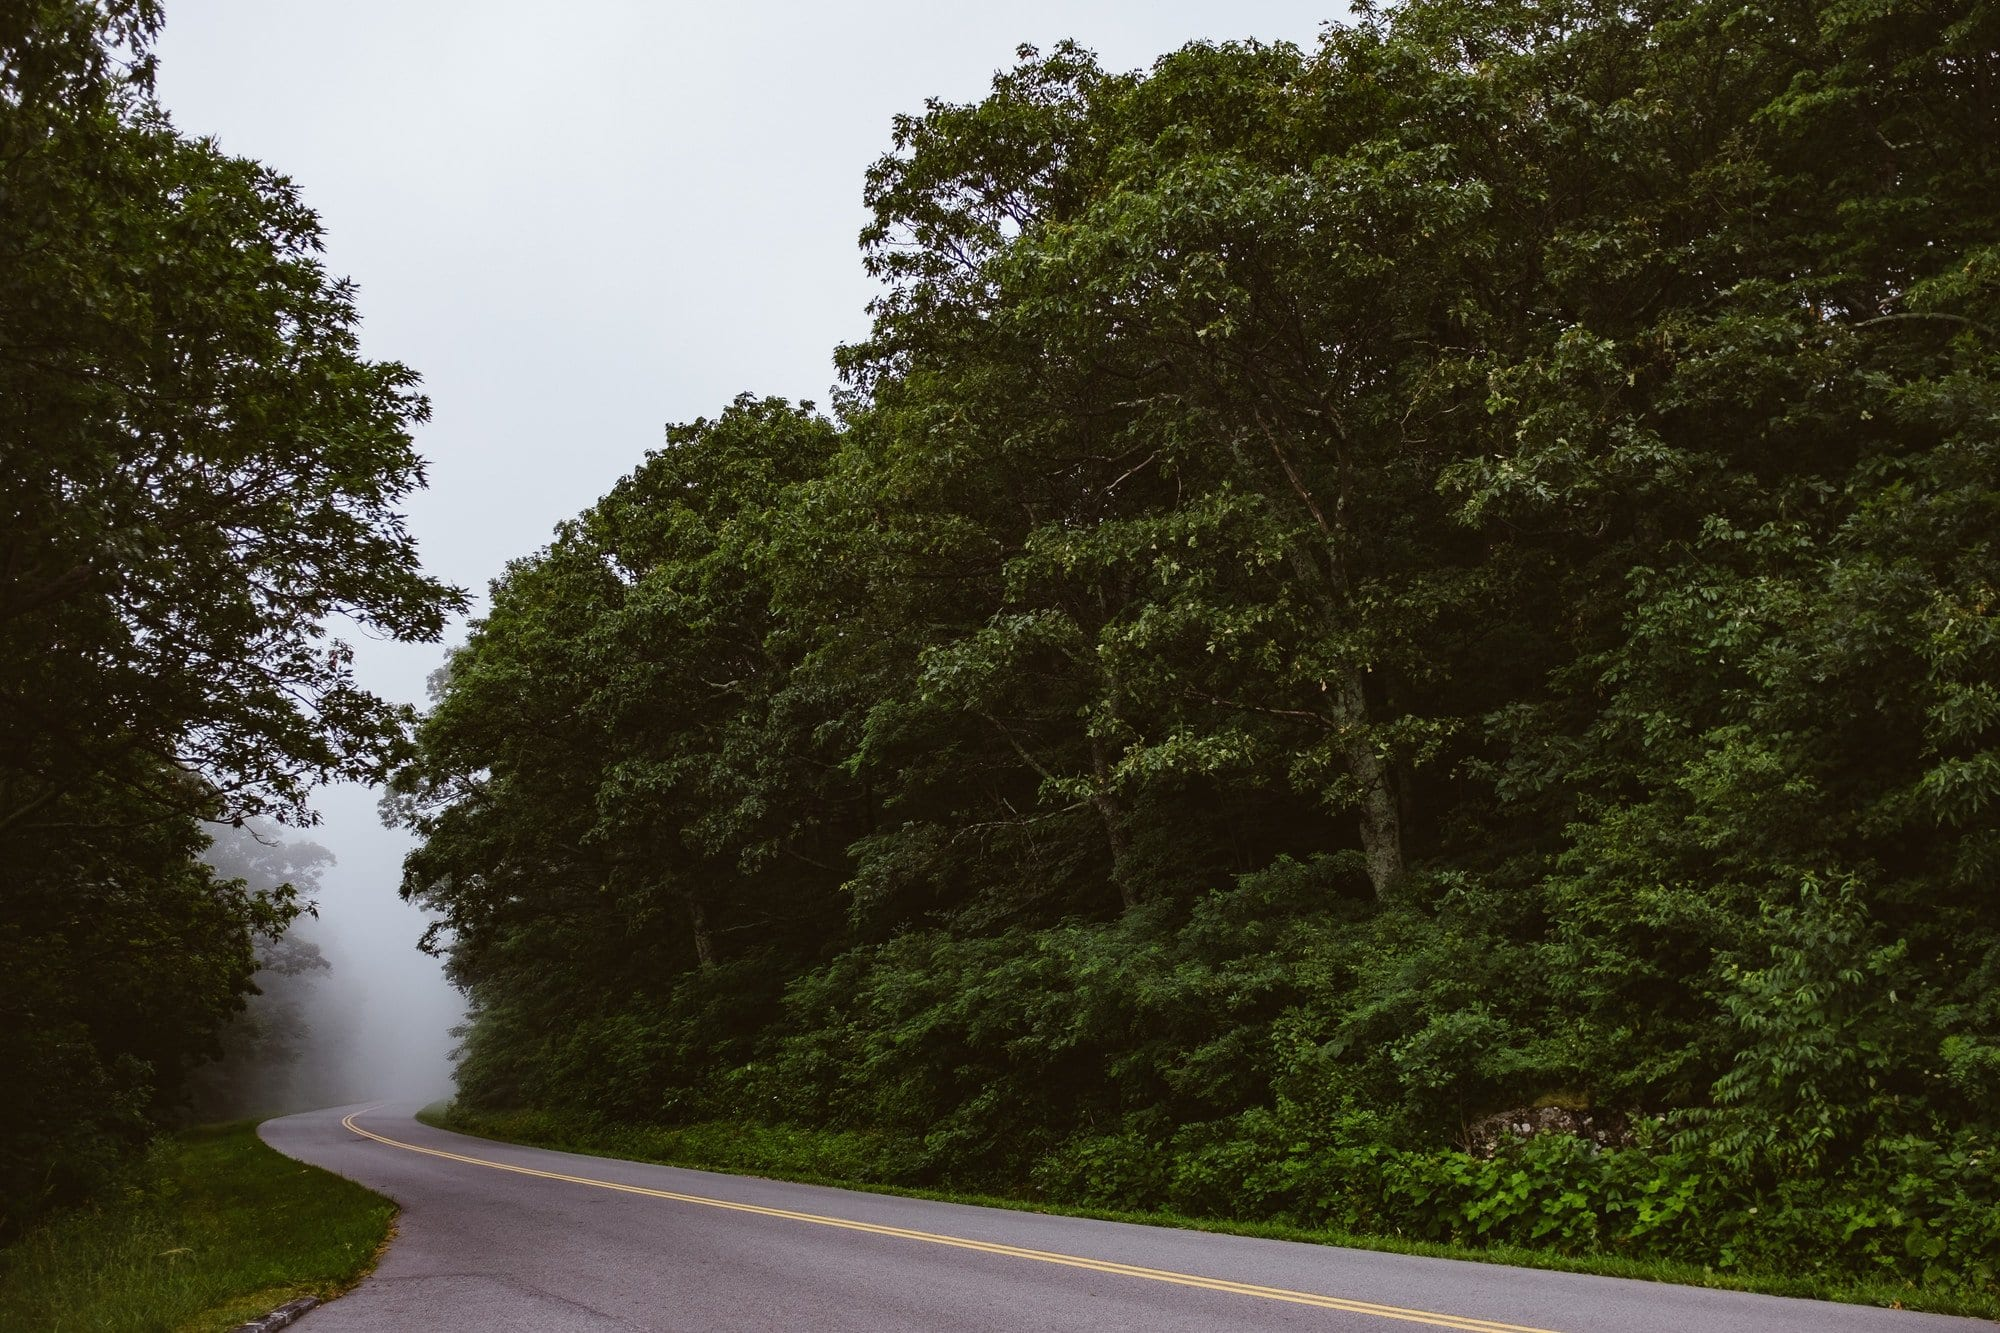 Driving on country roads: how to spot hazards and stay safe